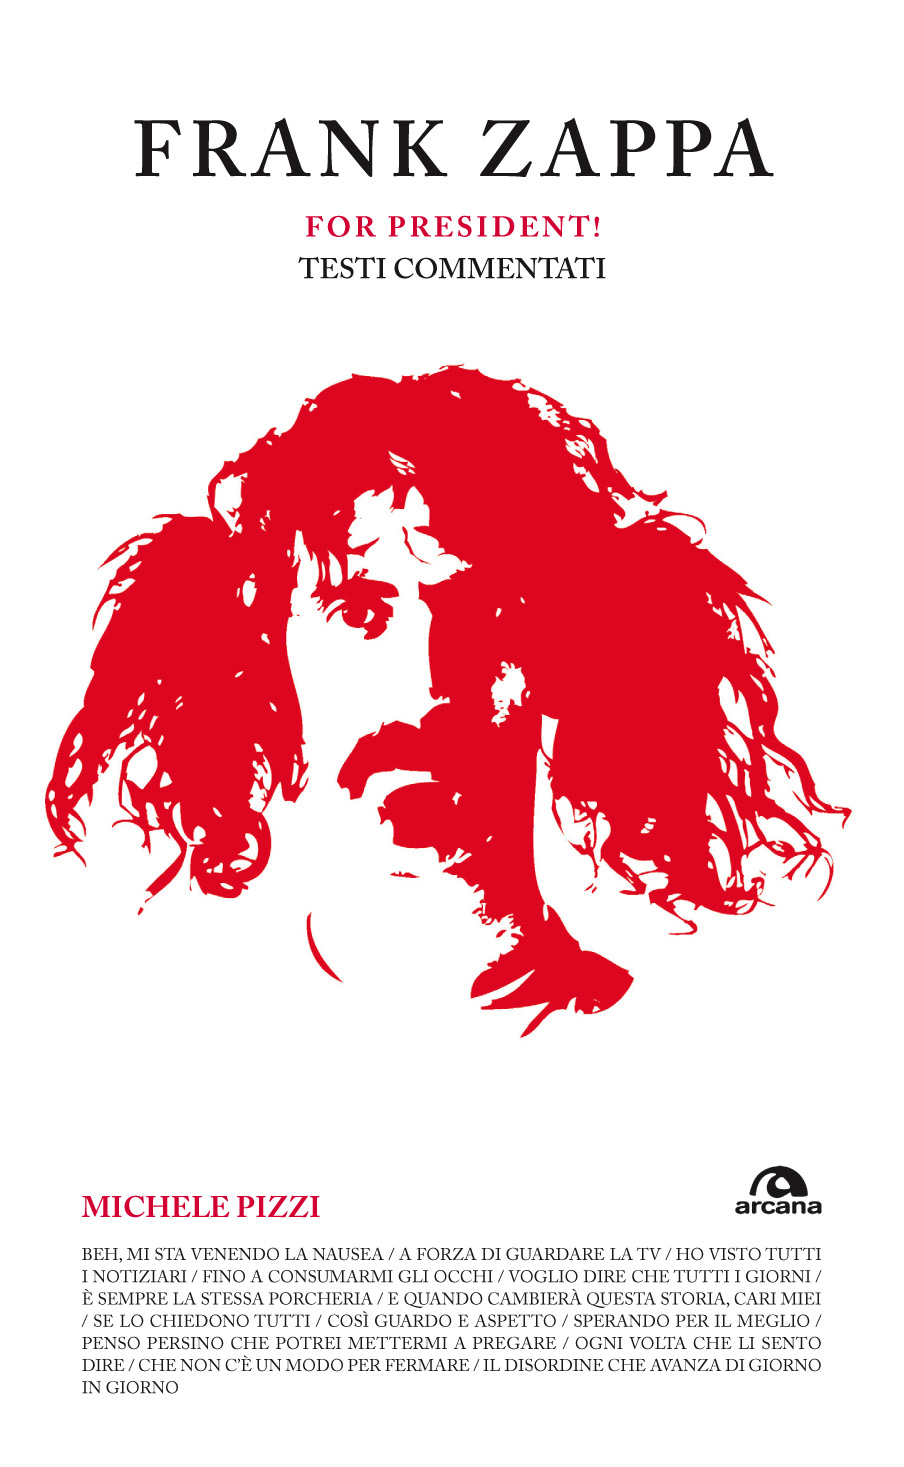 More about Frank Zappa